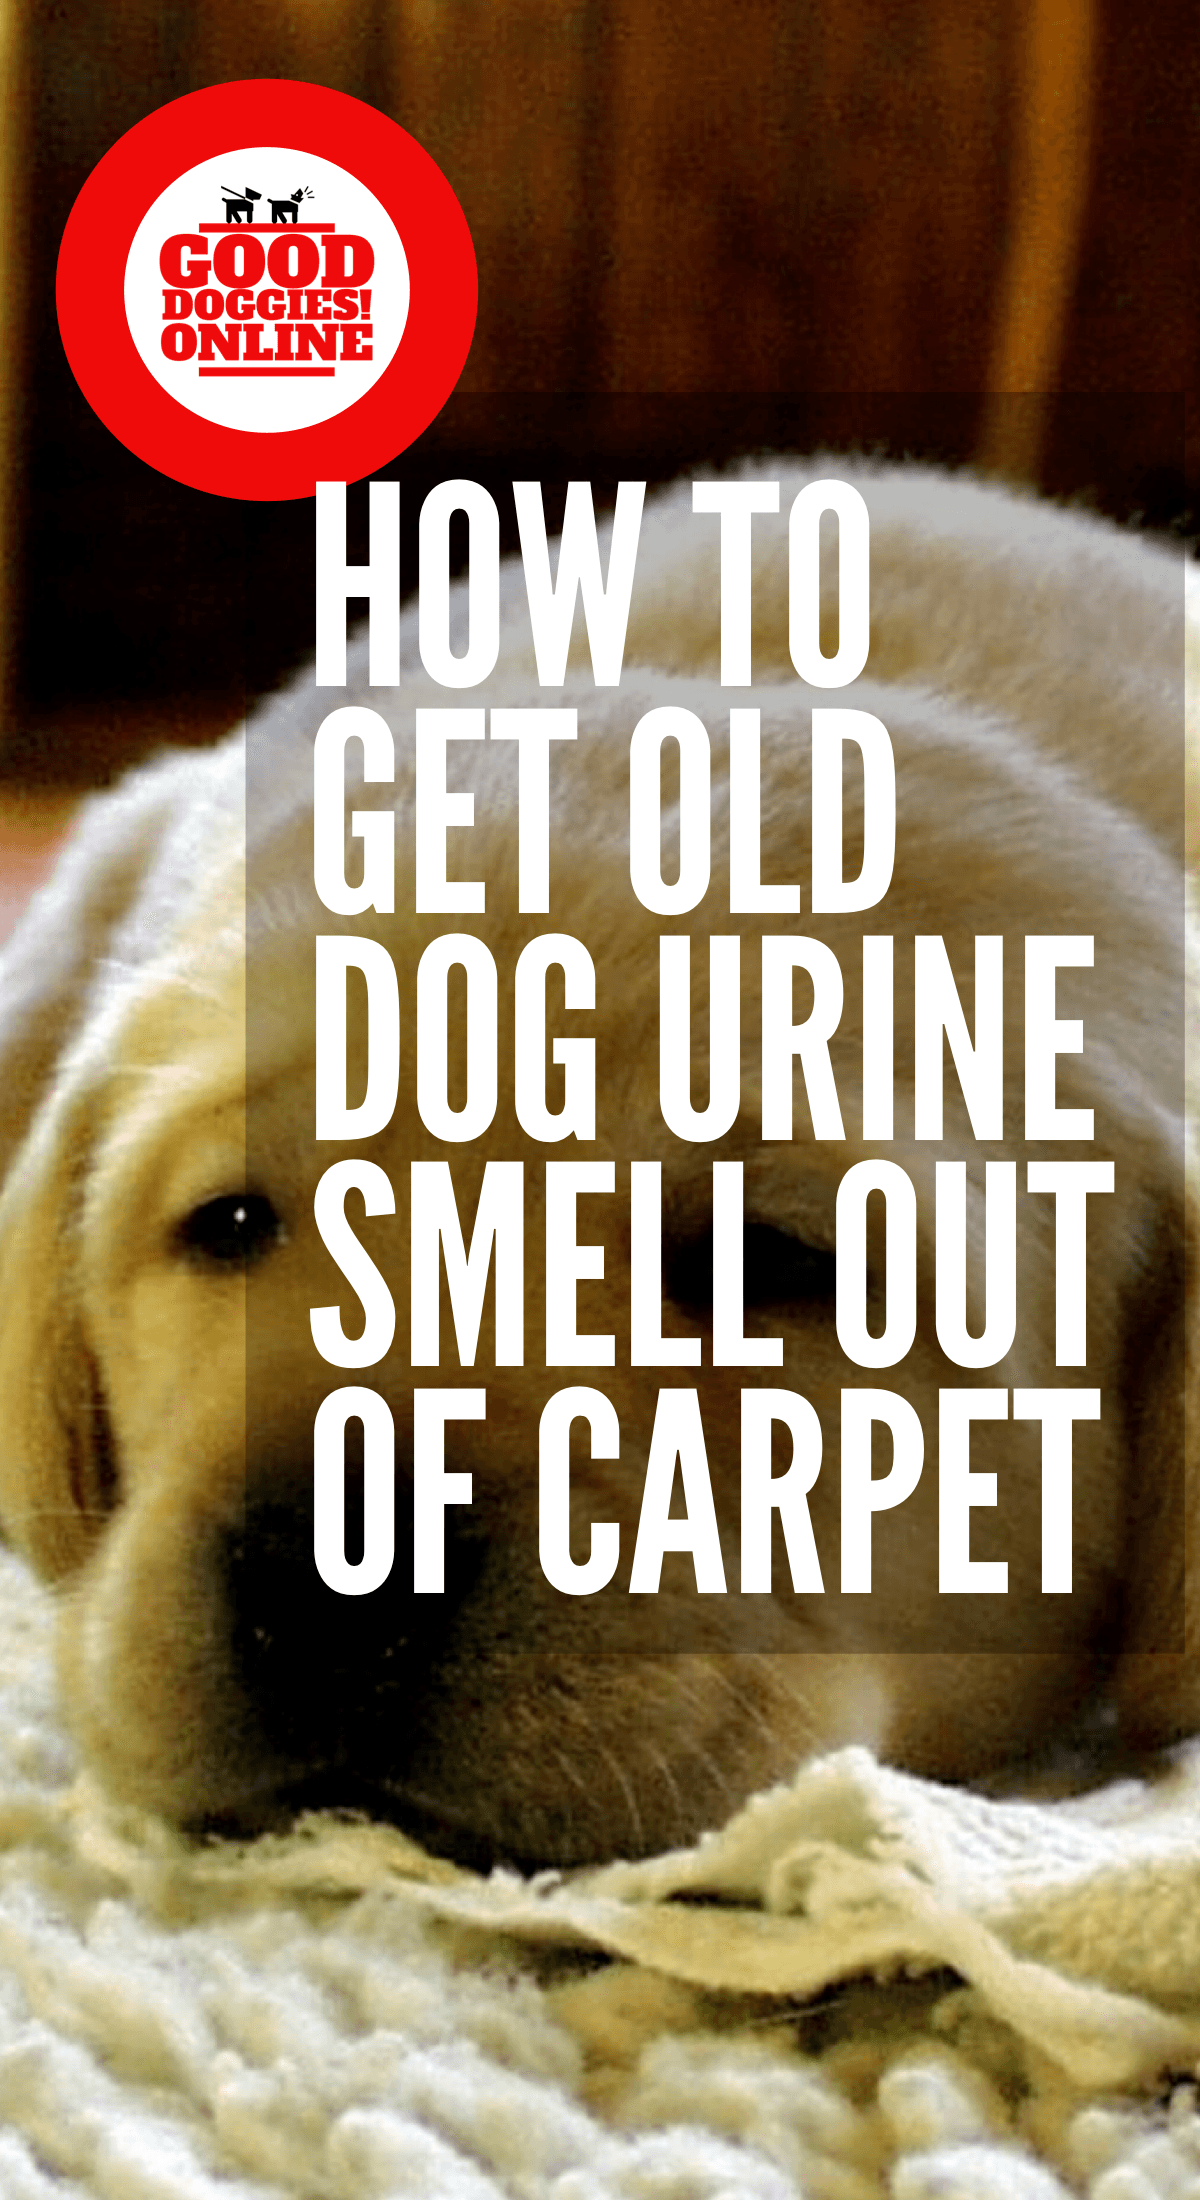 How To Get Old Dog Urine Pee Smell Out Of Carpet Good Doggies Online Cleaning Dog Pee Pee Smell Dog Pee Smell